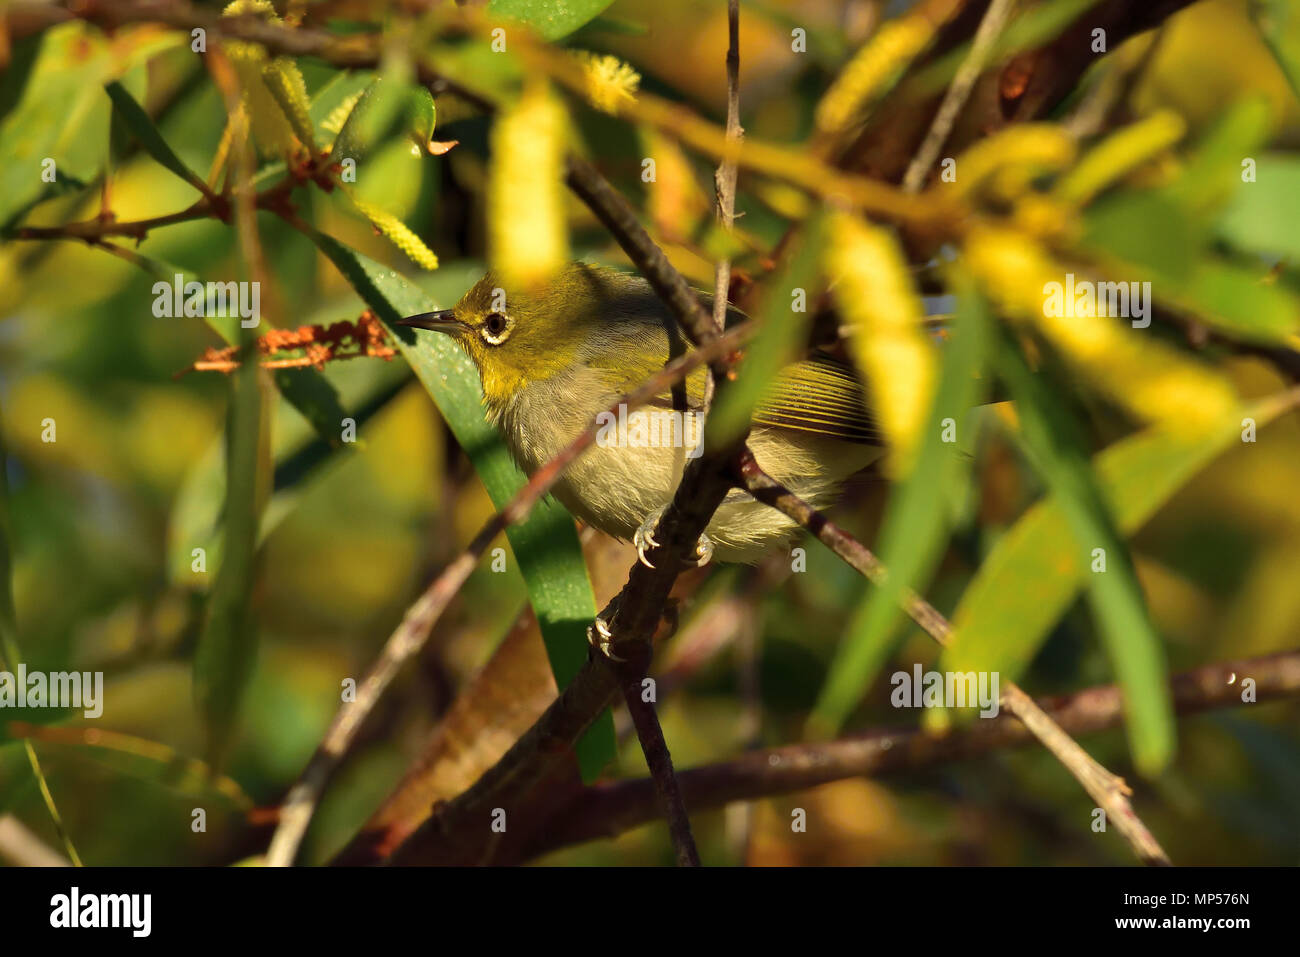 An Australian, Queensland Silvereye, Zosterops lateralis resting on a Tree branch in thick bush - Stock Image